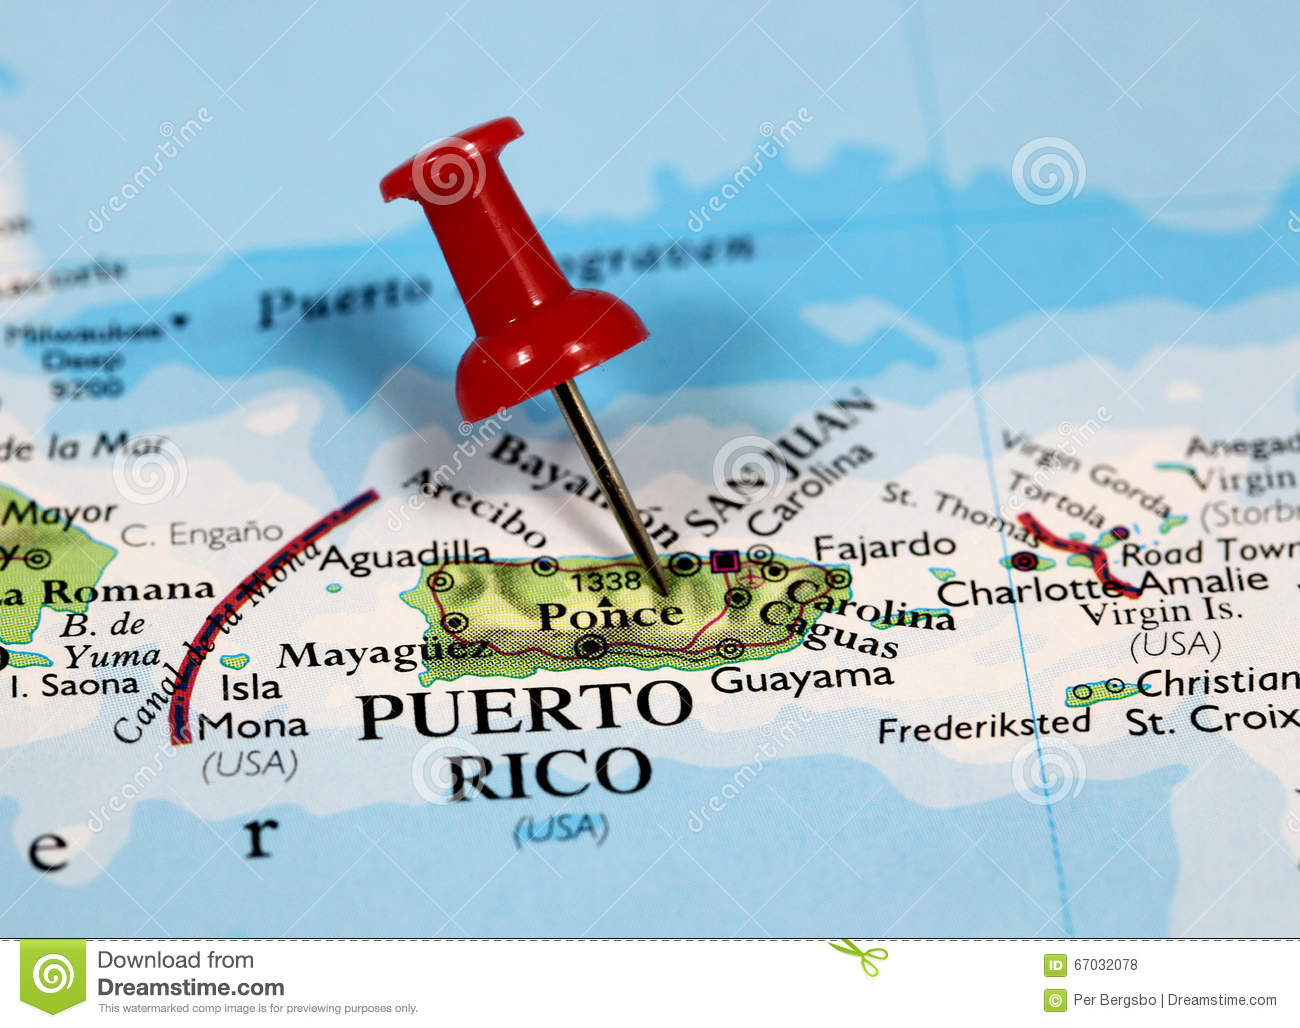 Puerto Rico Map Stock Images - 93 Photos